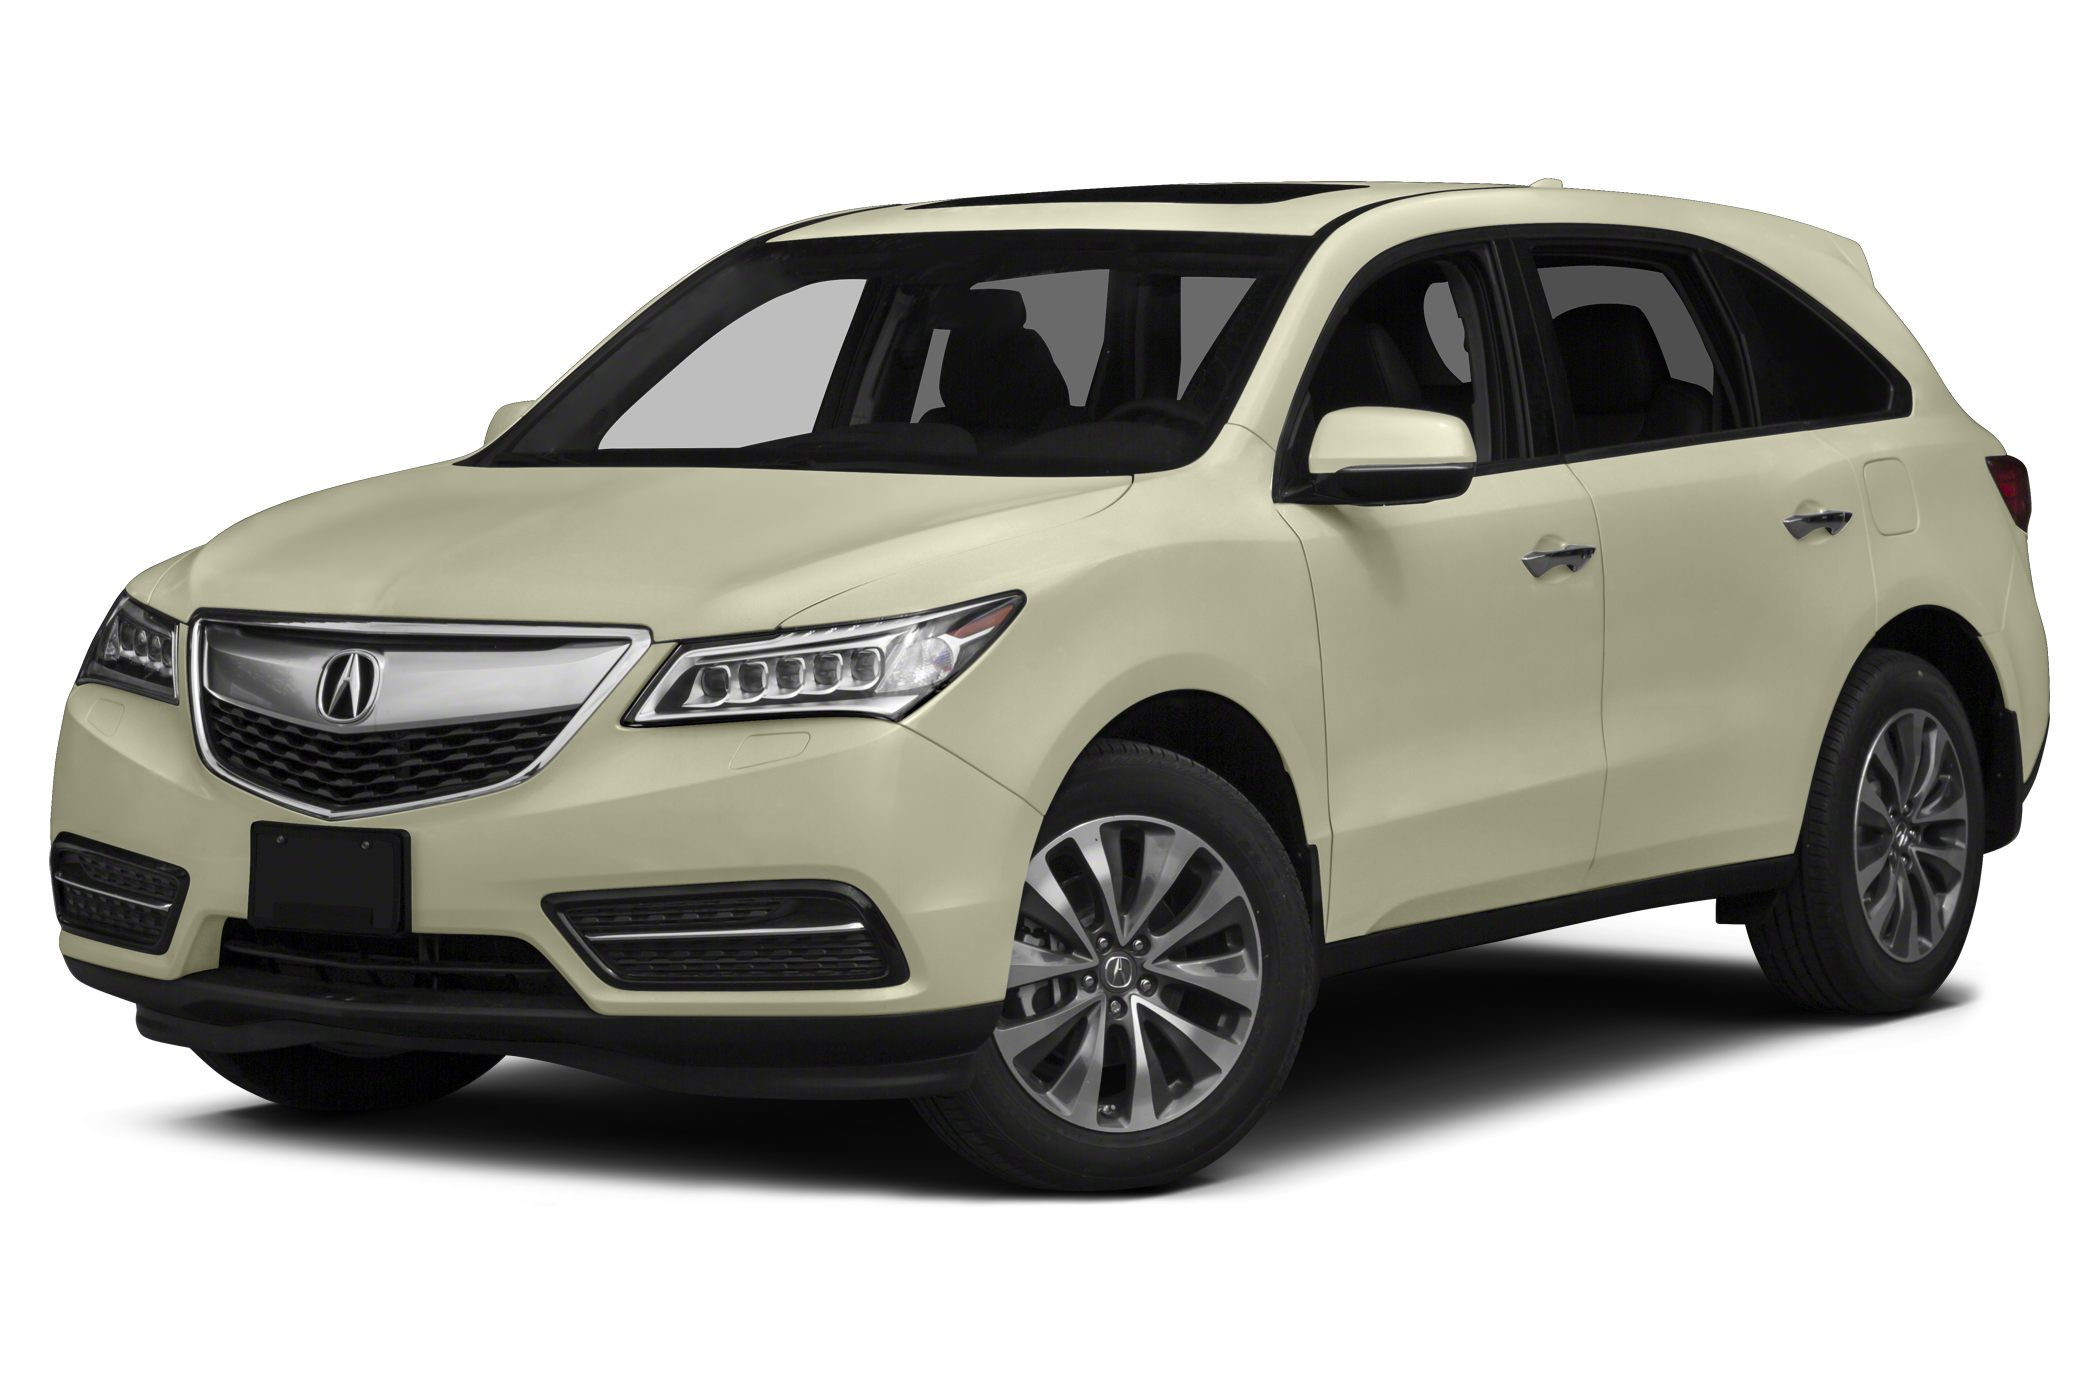 2015 Acura MDX 3.5L Technology Package SUV for sale in Columbus for $49,960 with 5 miles.